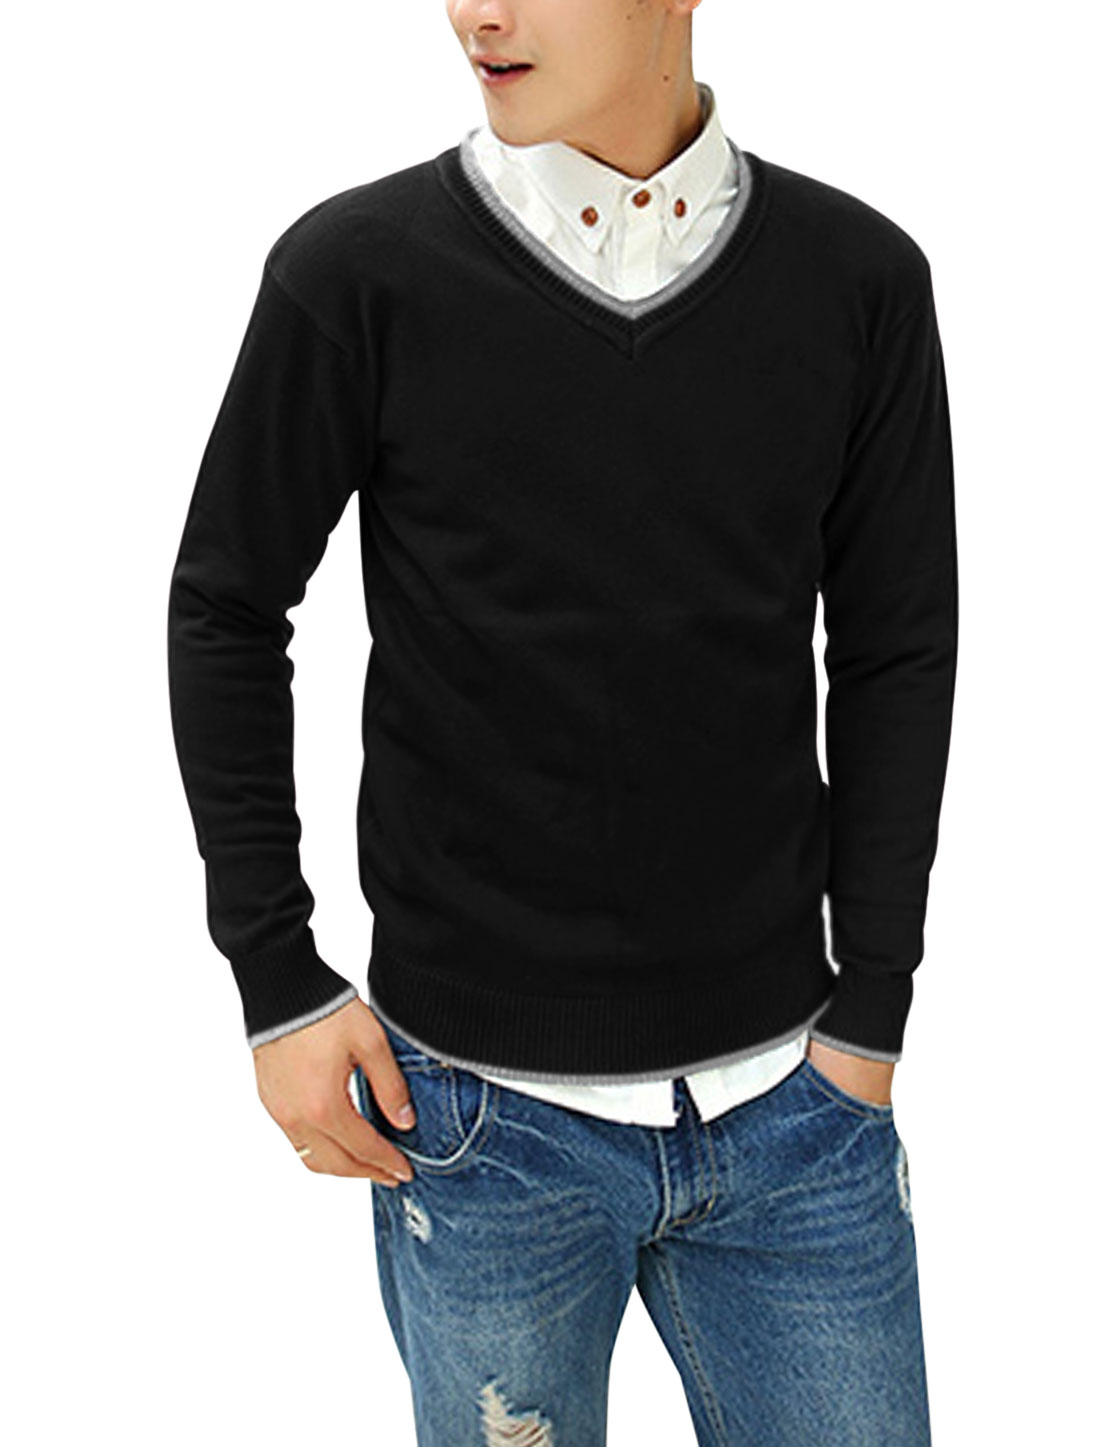 Men Ribbed Cuffs Contrast V Neck Long Sleeves Leisure Cozy Fit Sweater Black M